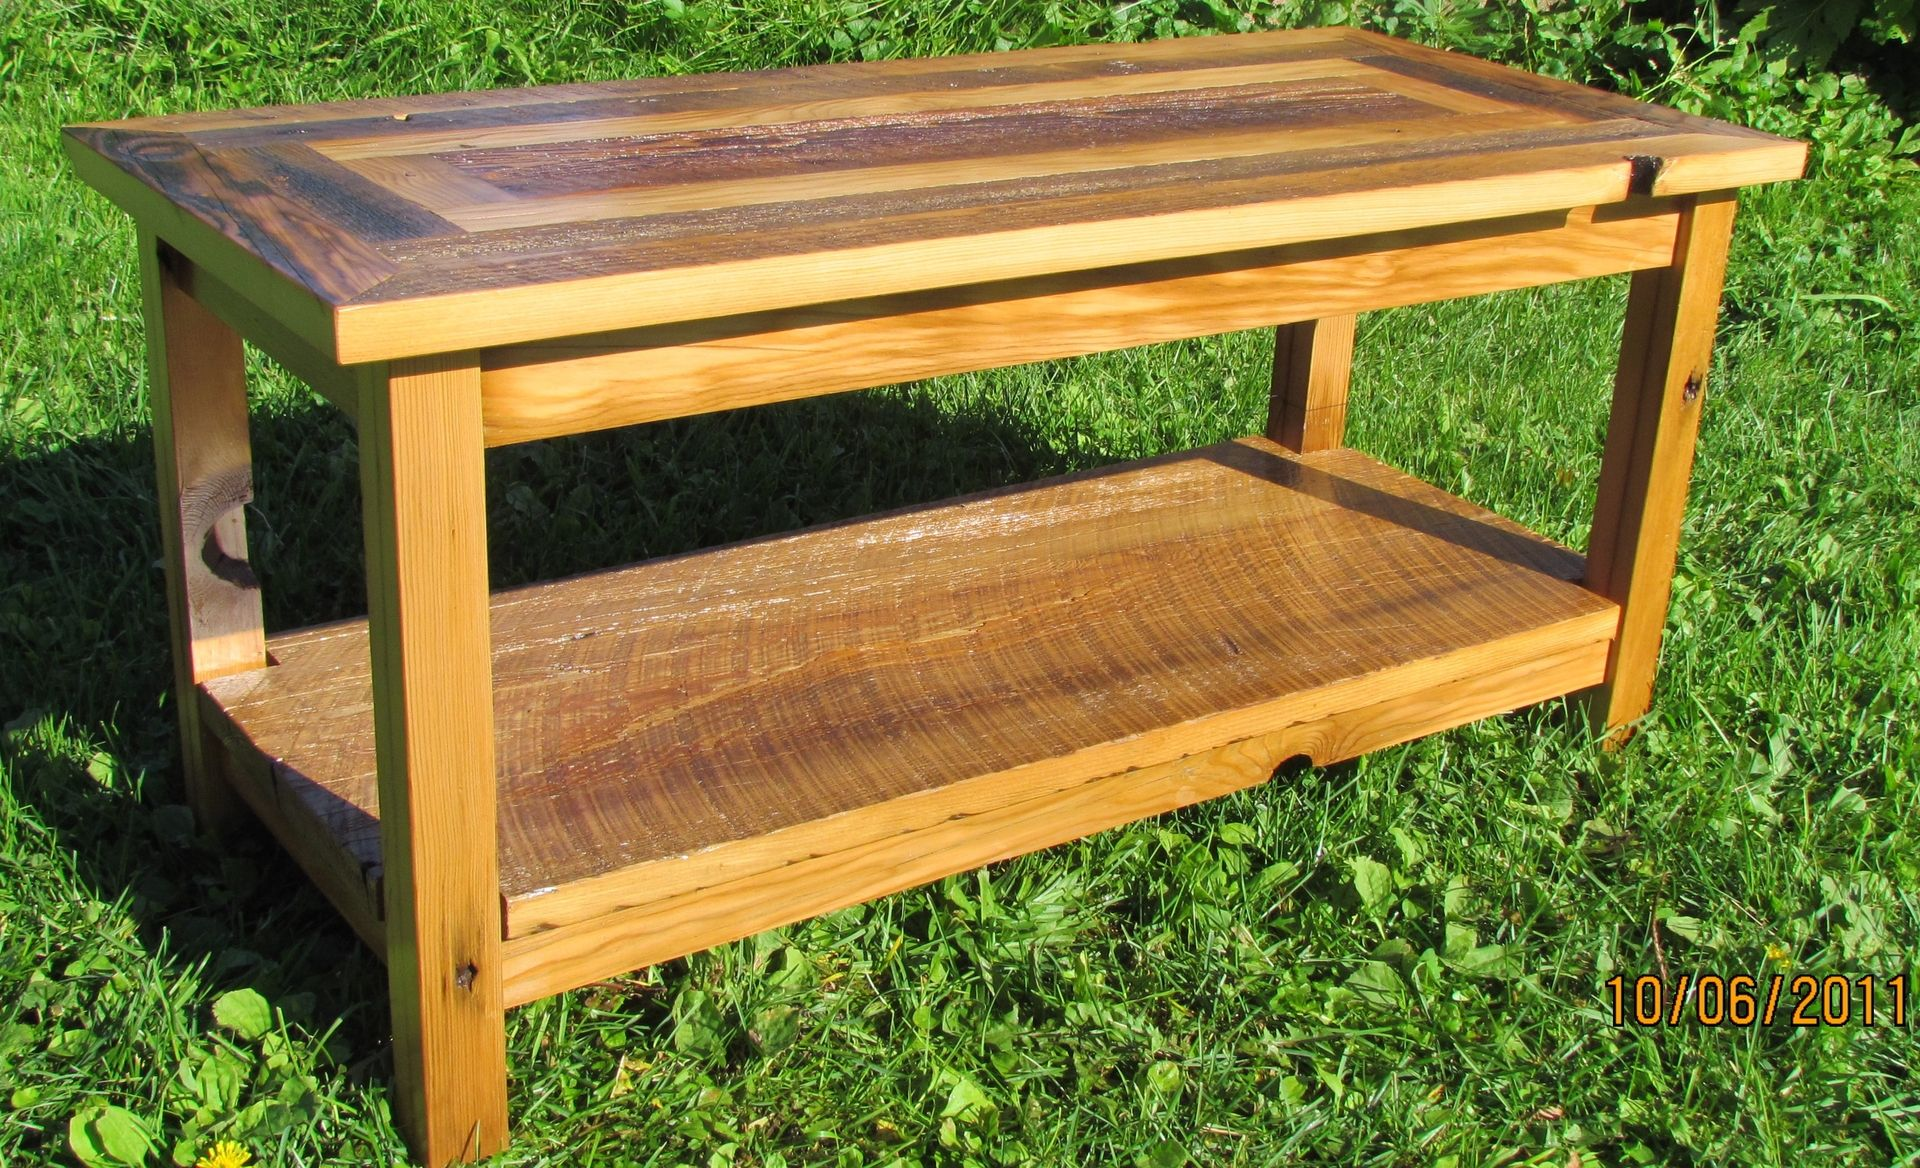 Handmade Reclaimed Barnwood Coffee Table With Matching End Tables